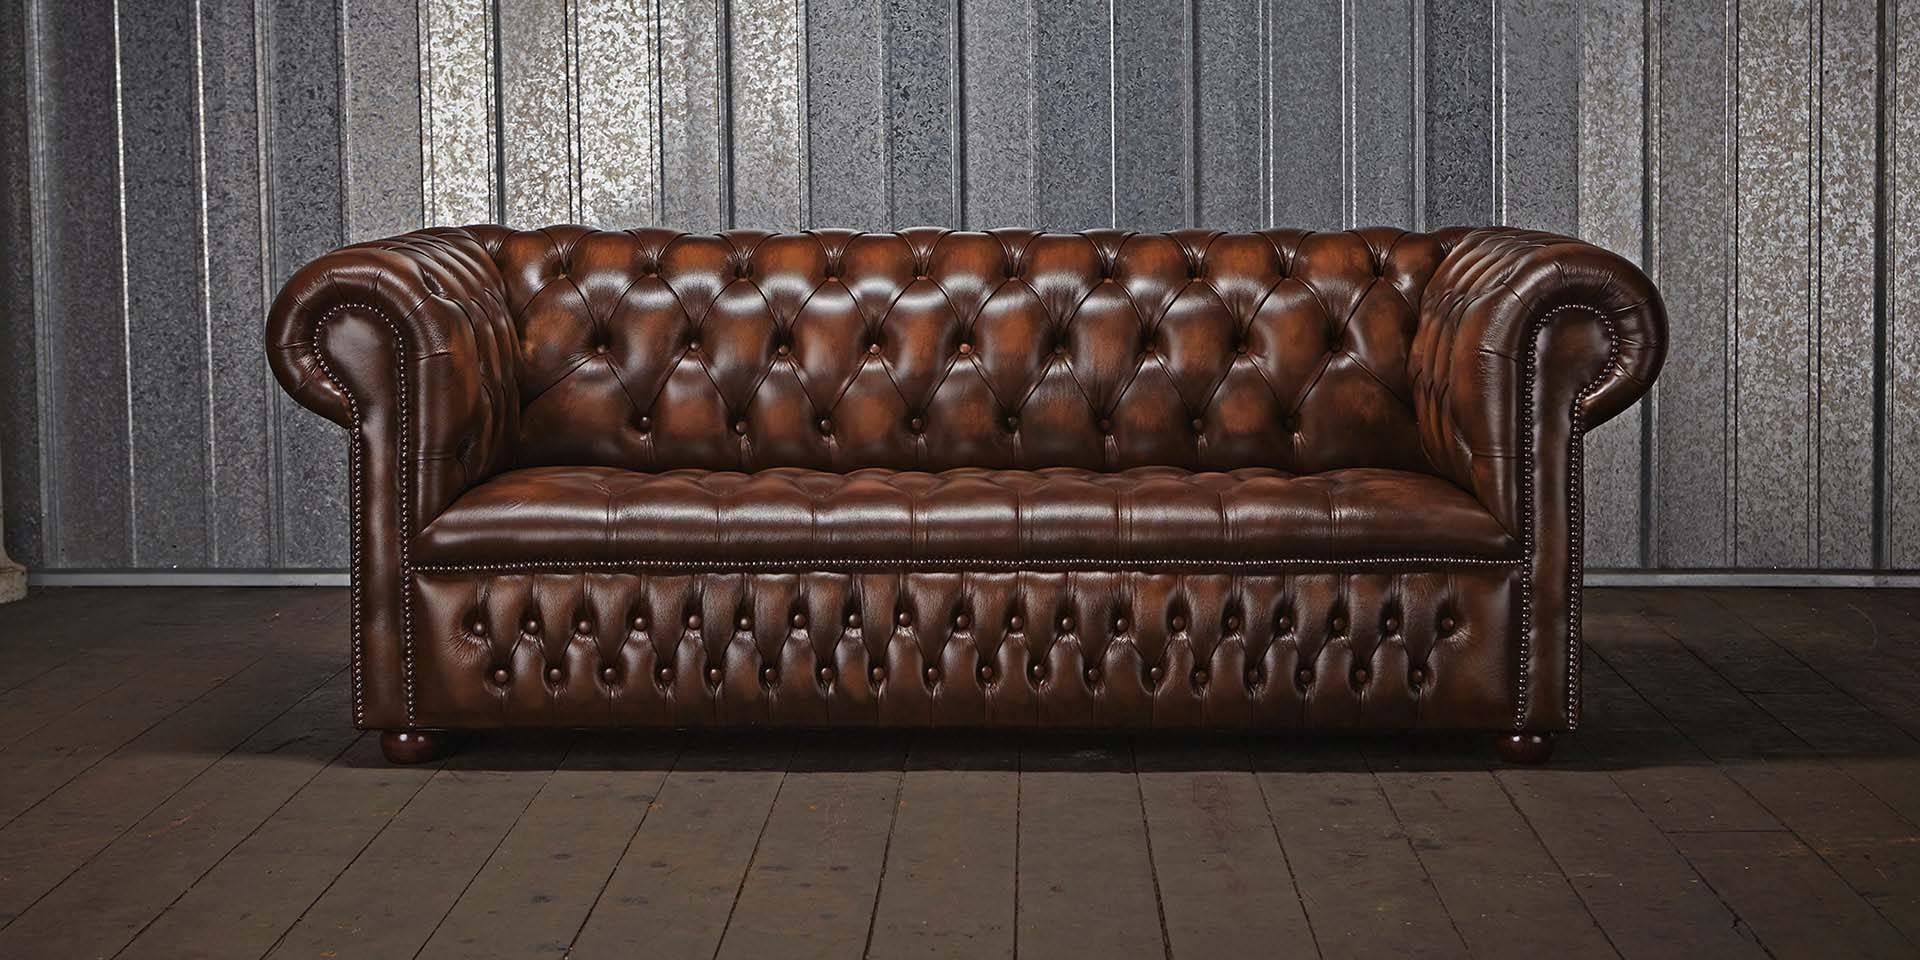 Chesterfields Of England | The Original Chesterfield Company pertaining to Chesterfield Sofas And Chairs (Image 7 of 15)